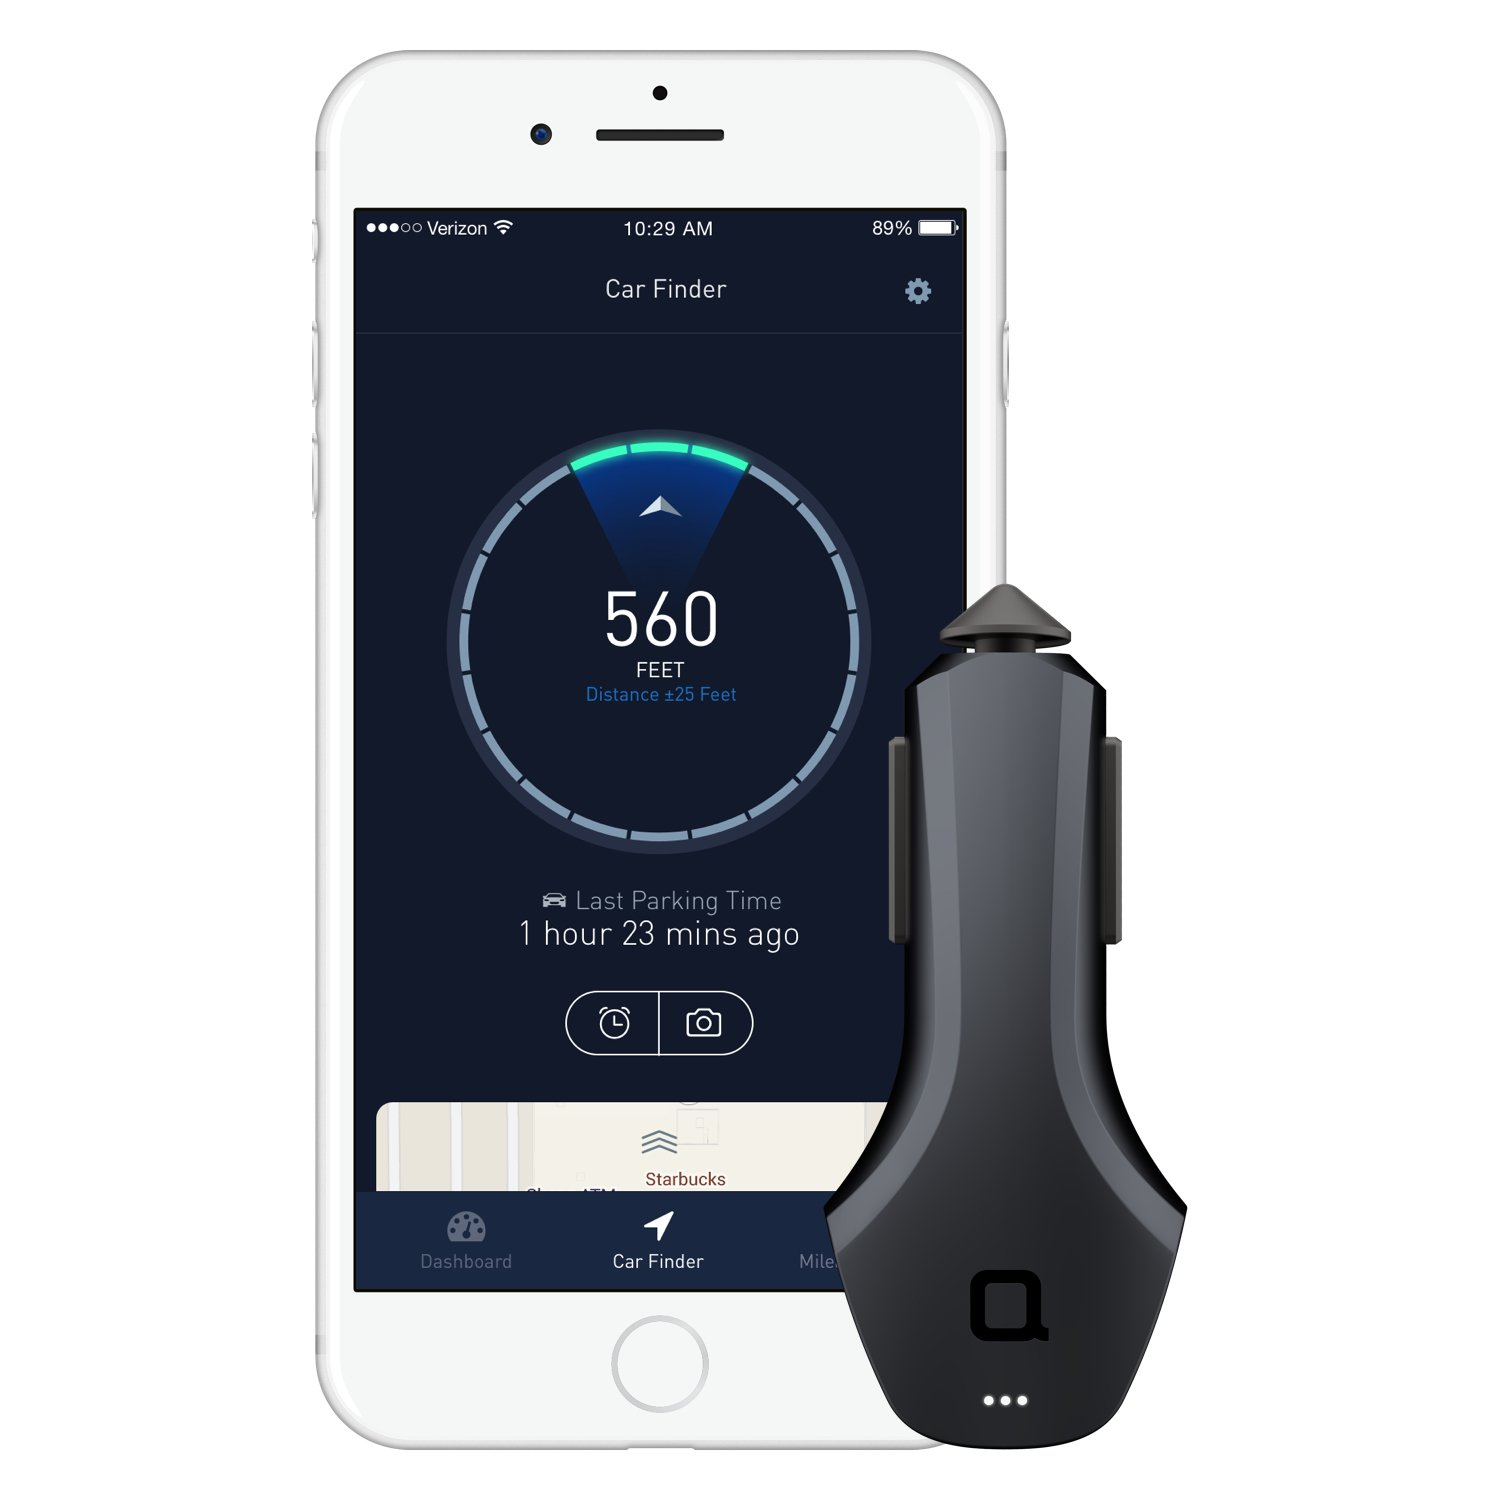 nonda ZUS Smart Car Charger & Connected Car App Suite, Save Parking Location, Monitor Car Battery Health, Mileage Log- No OBD Port Required, Best Companion for Navdy, Automatic, Vyncs, Linxup, Carlock by nonda